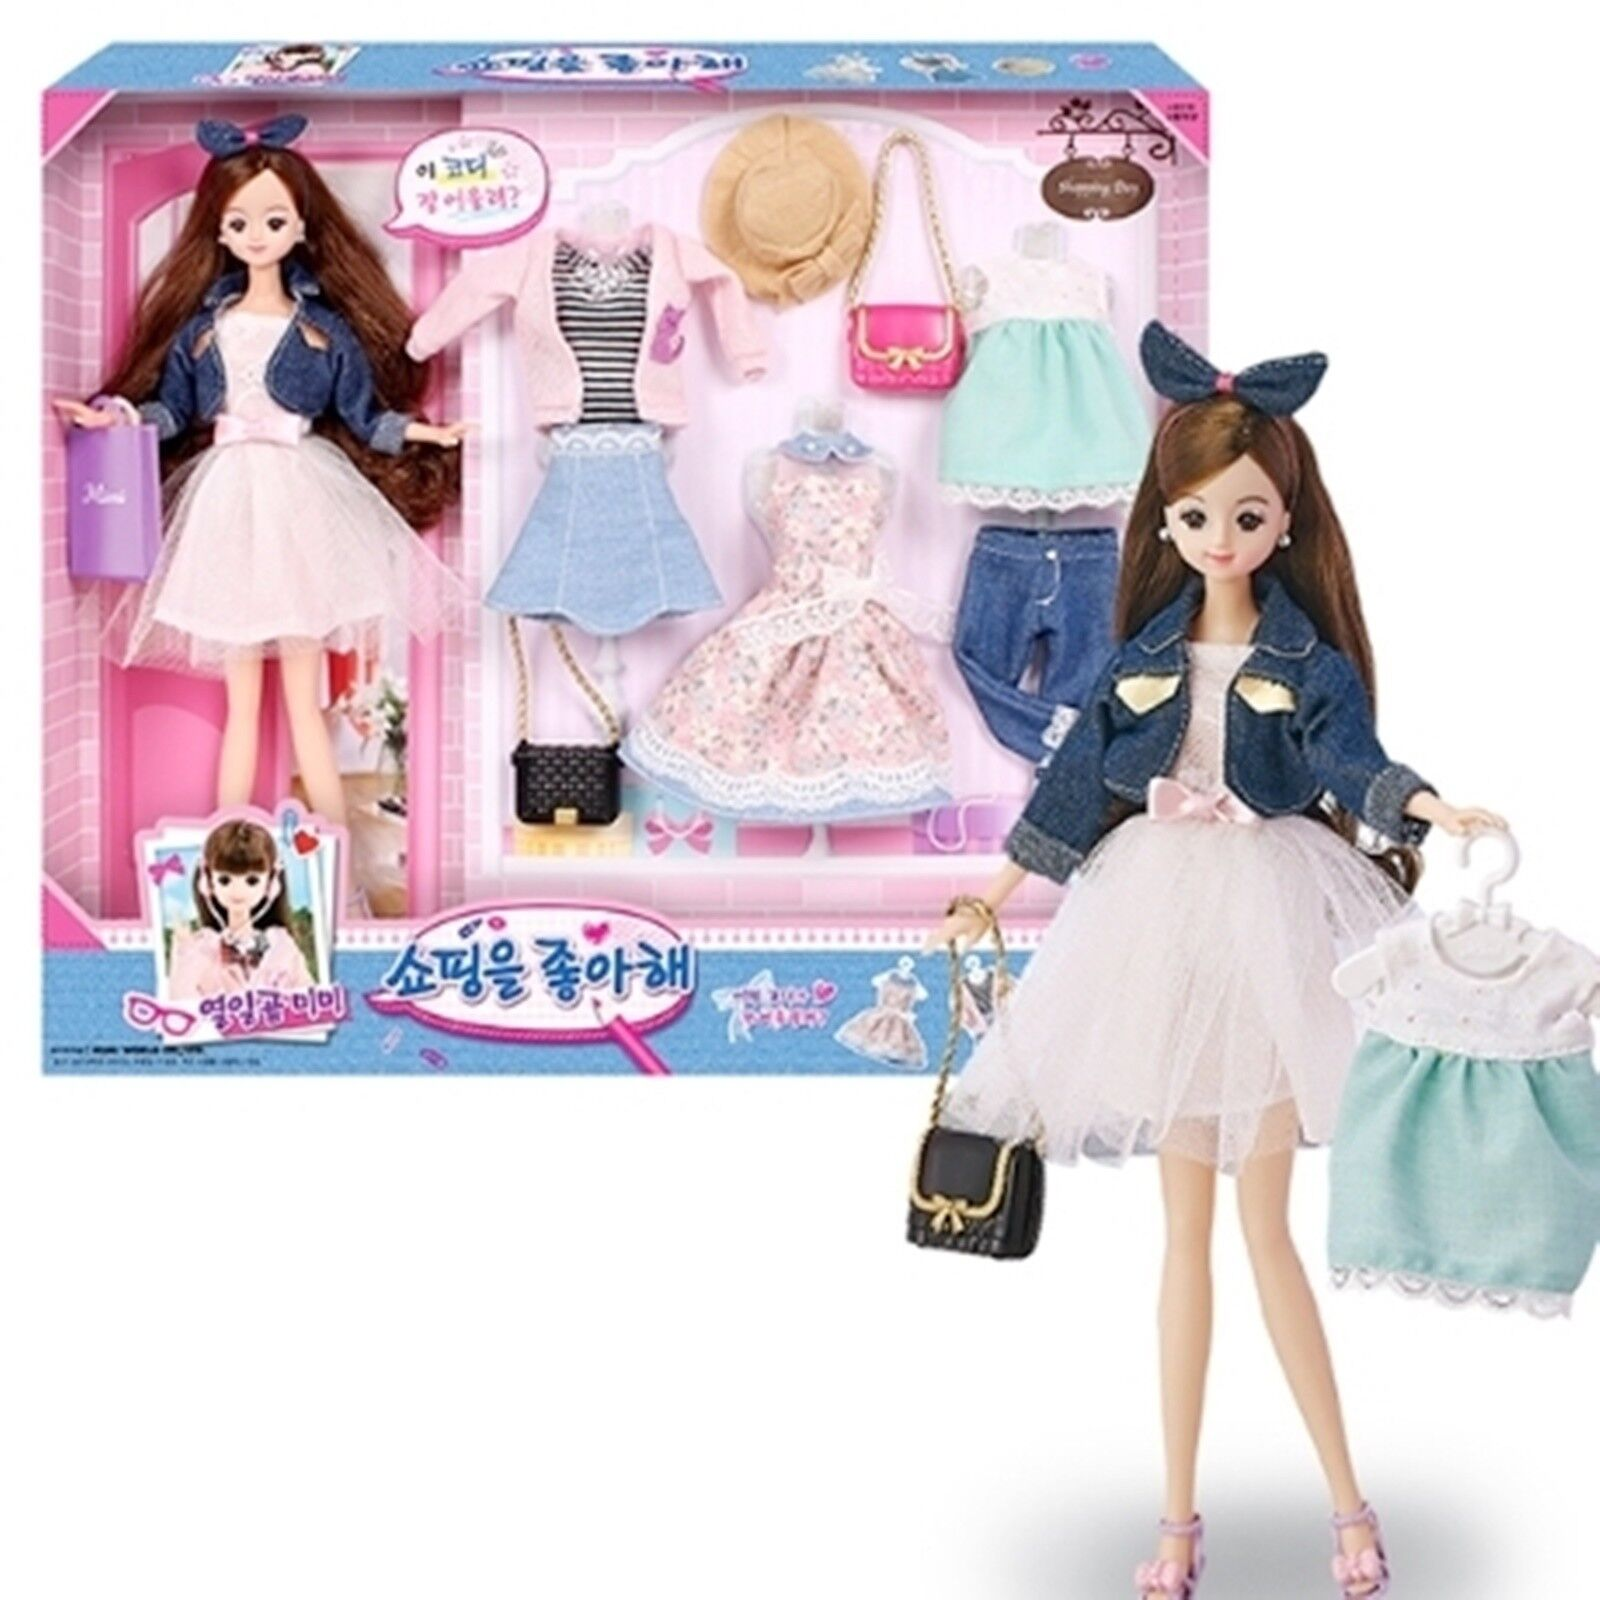 Seventeen MIMI Shopping Barbie Doll Coordination Play Character Figure toy girl